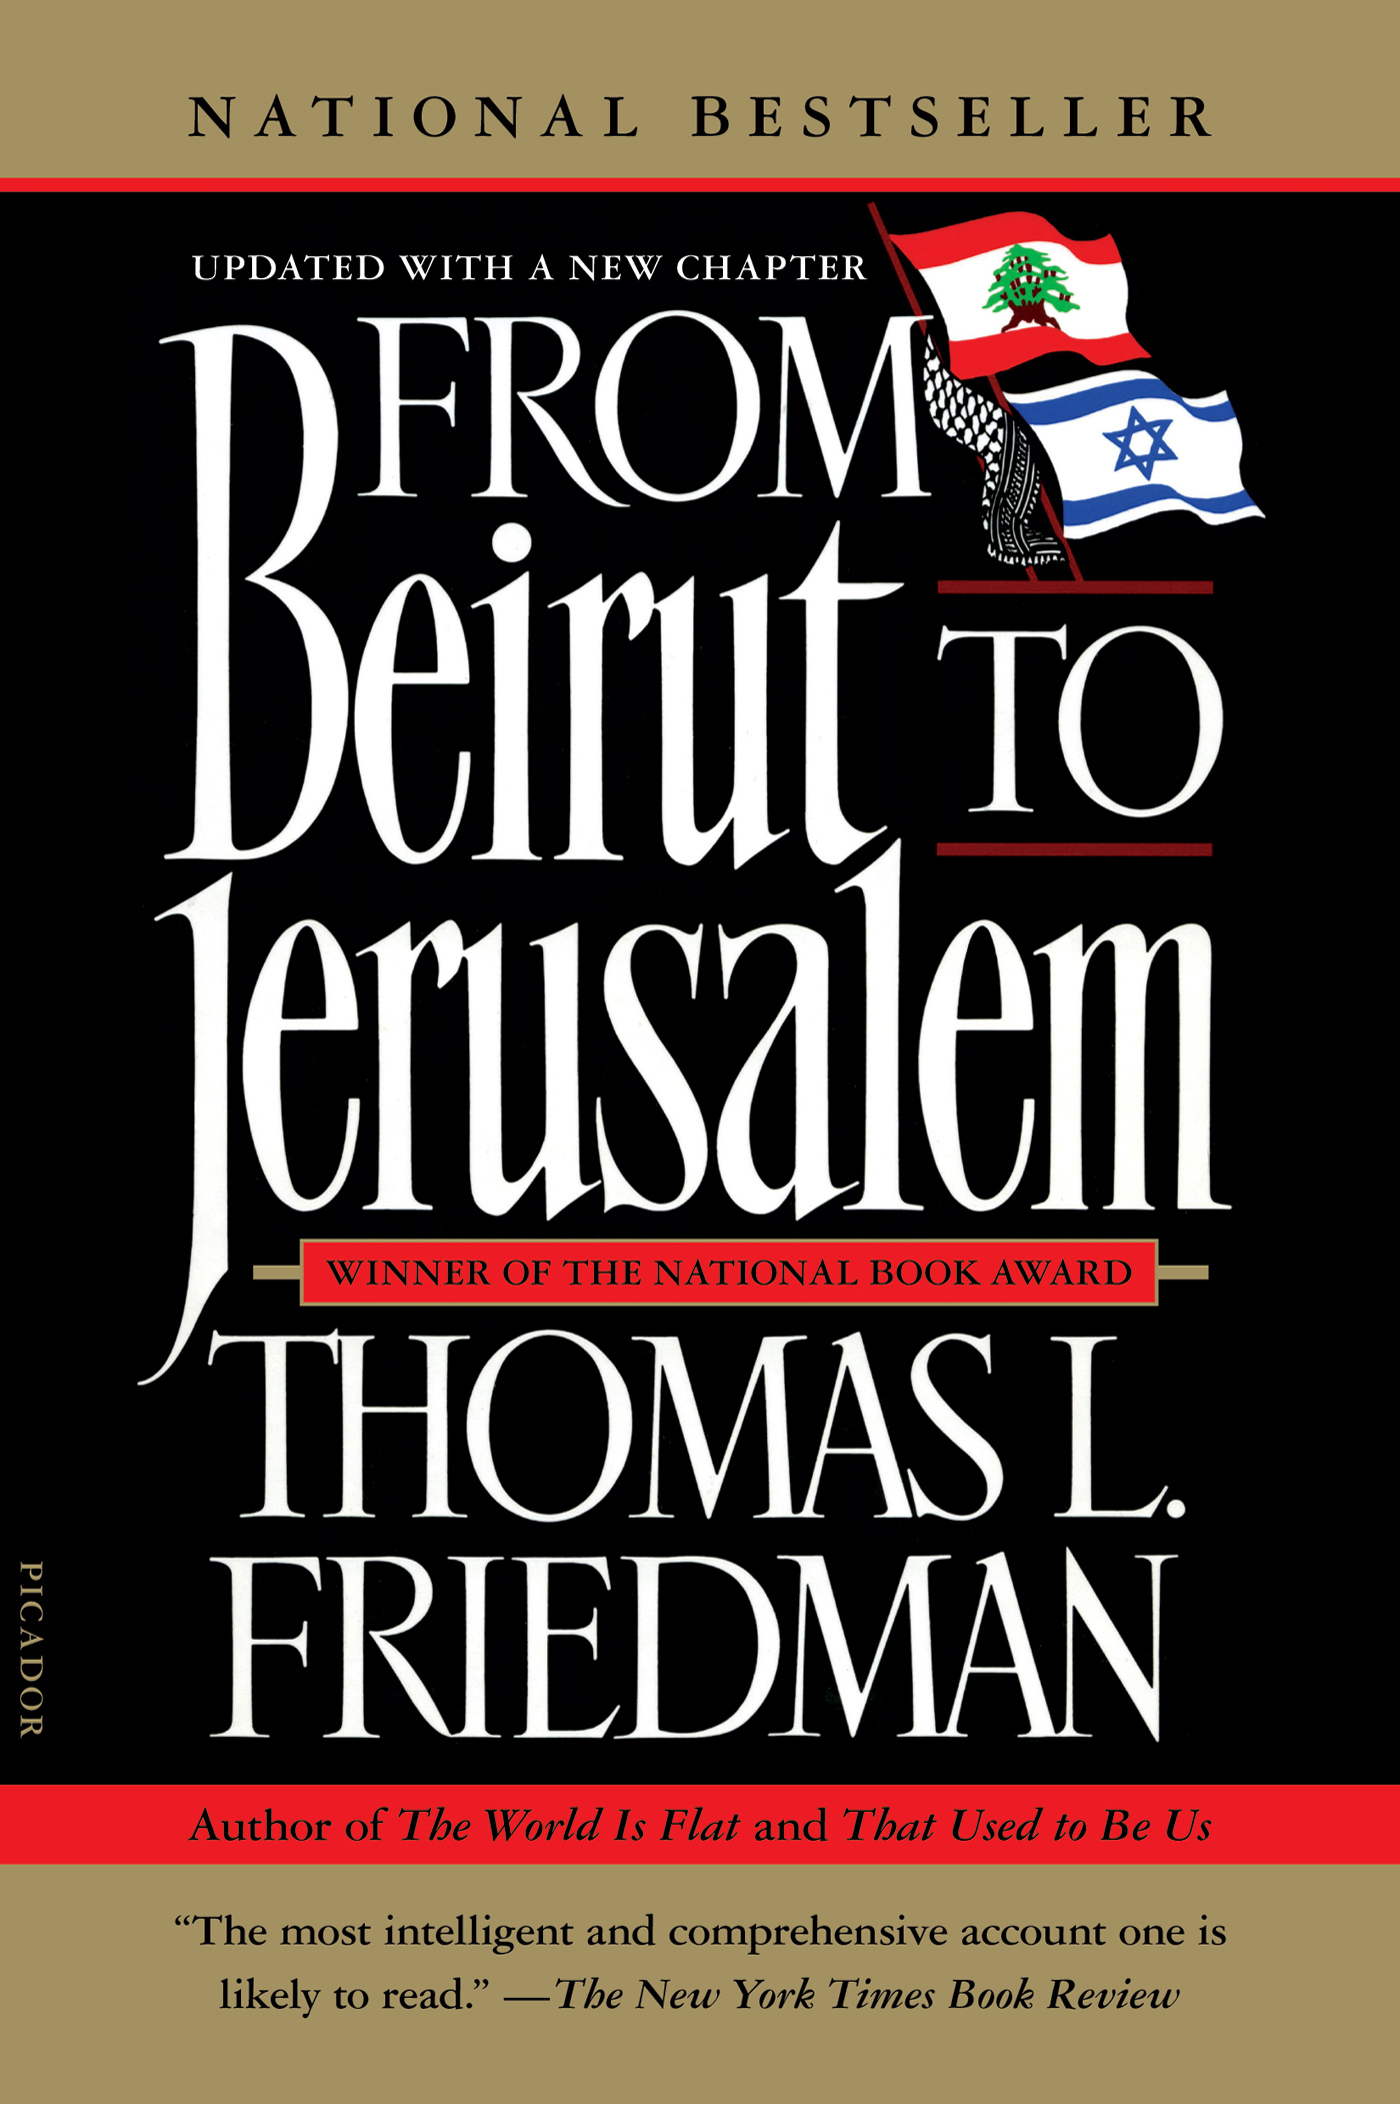 From Beirut to Jerusalem By: Thomas L. Friedman